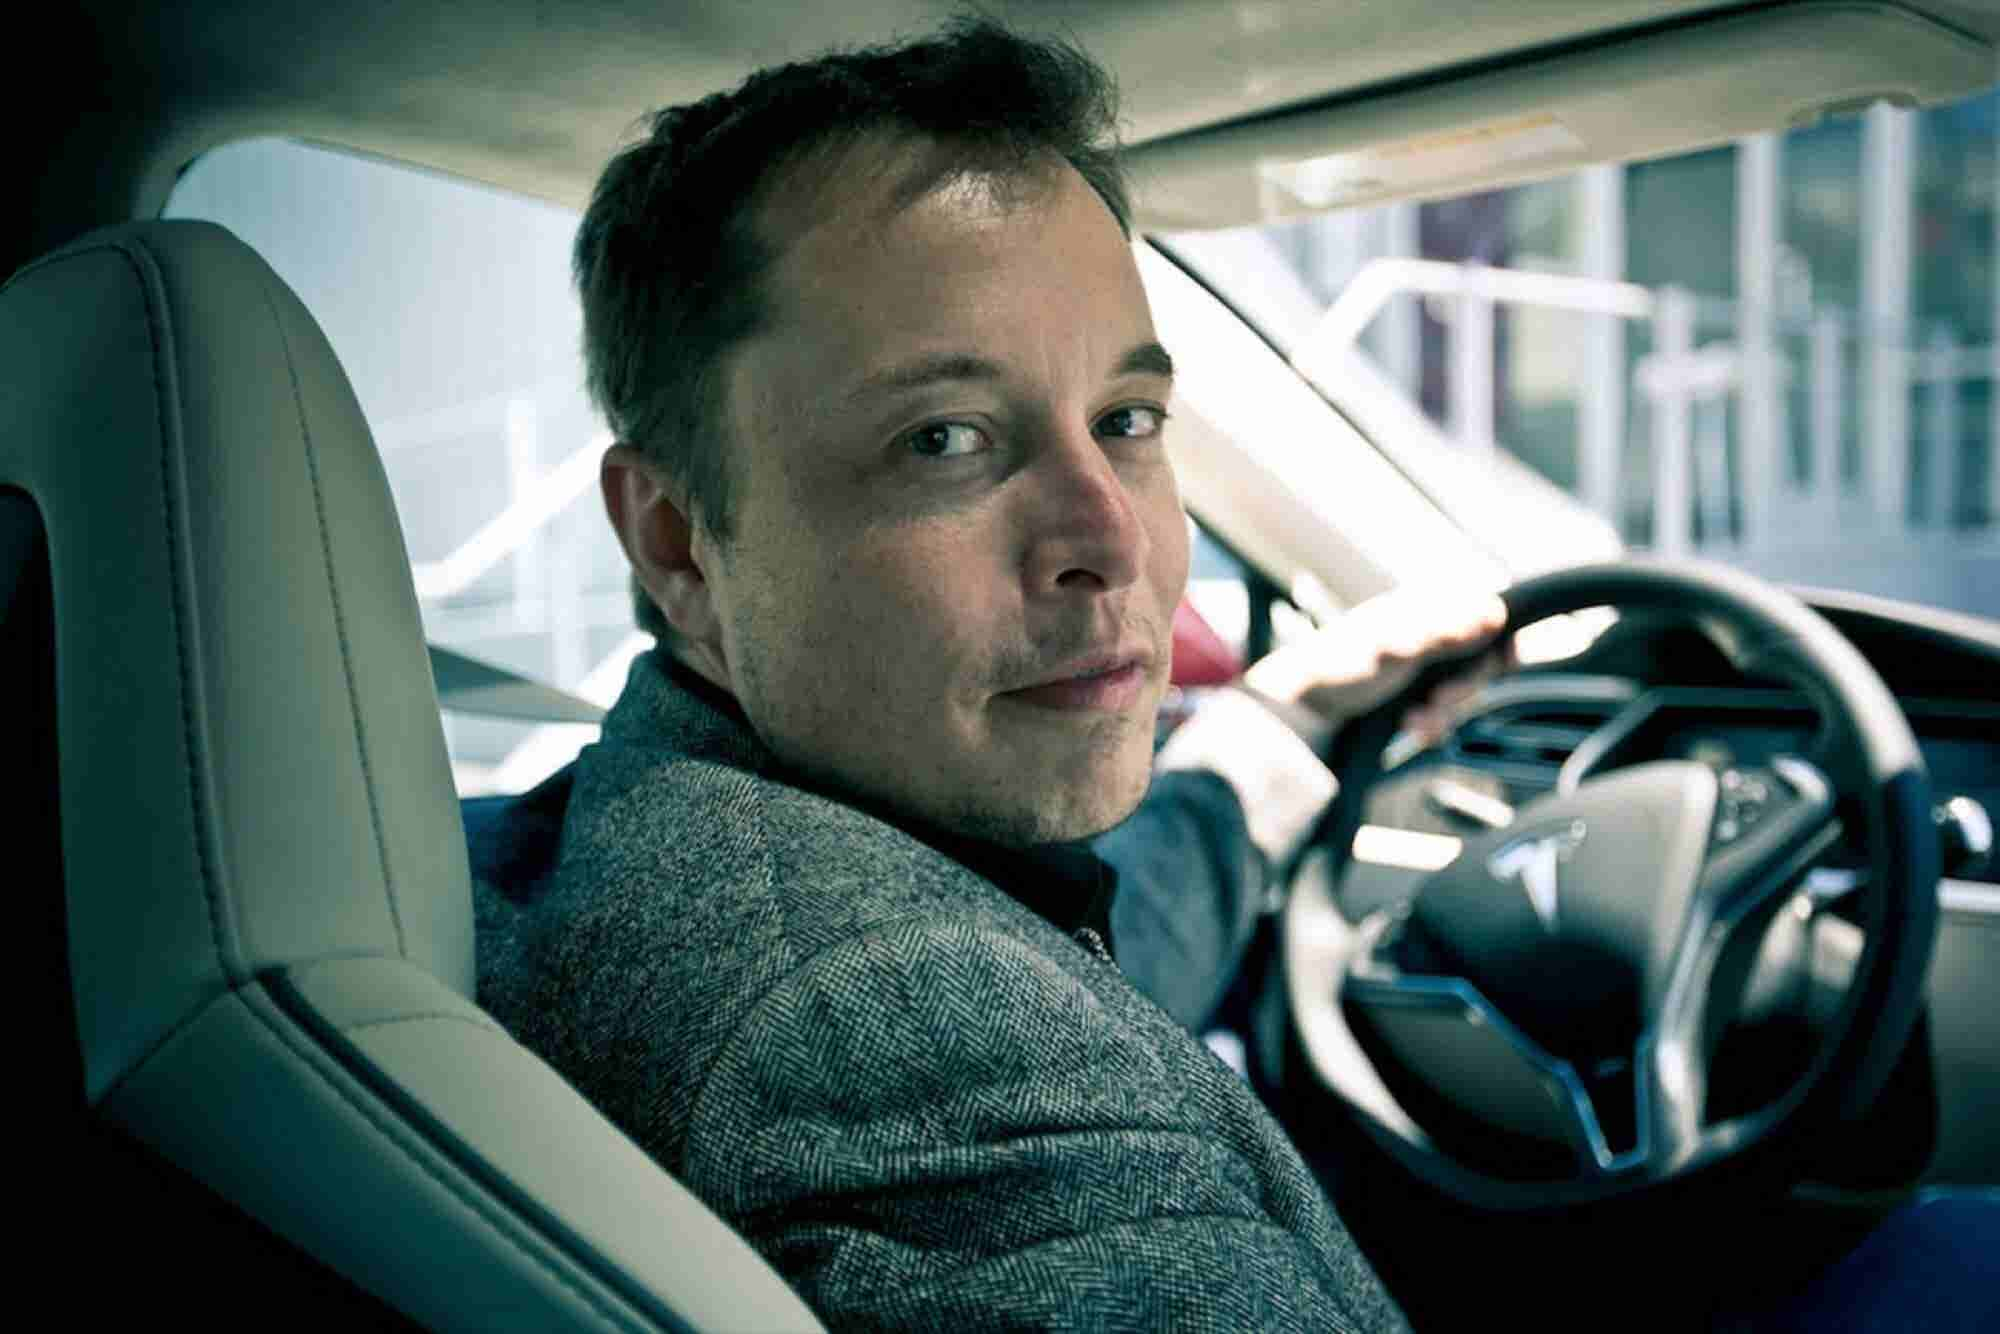 Elon Musk Buys Back X.com From PayPal